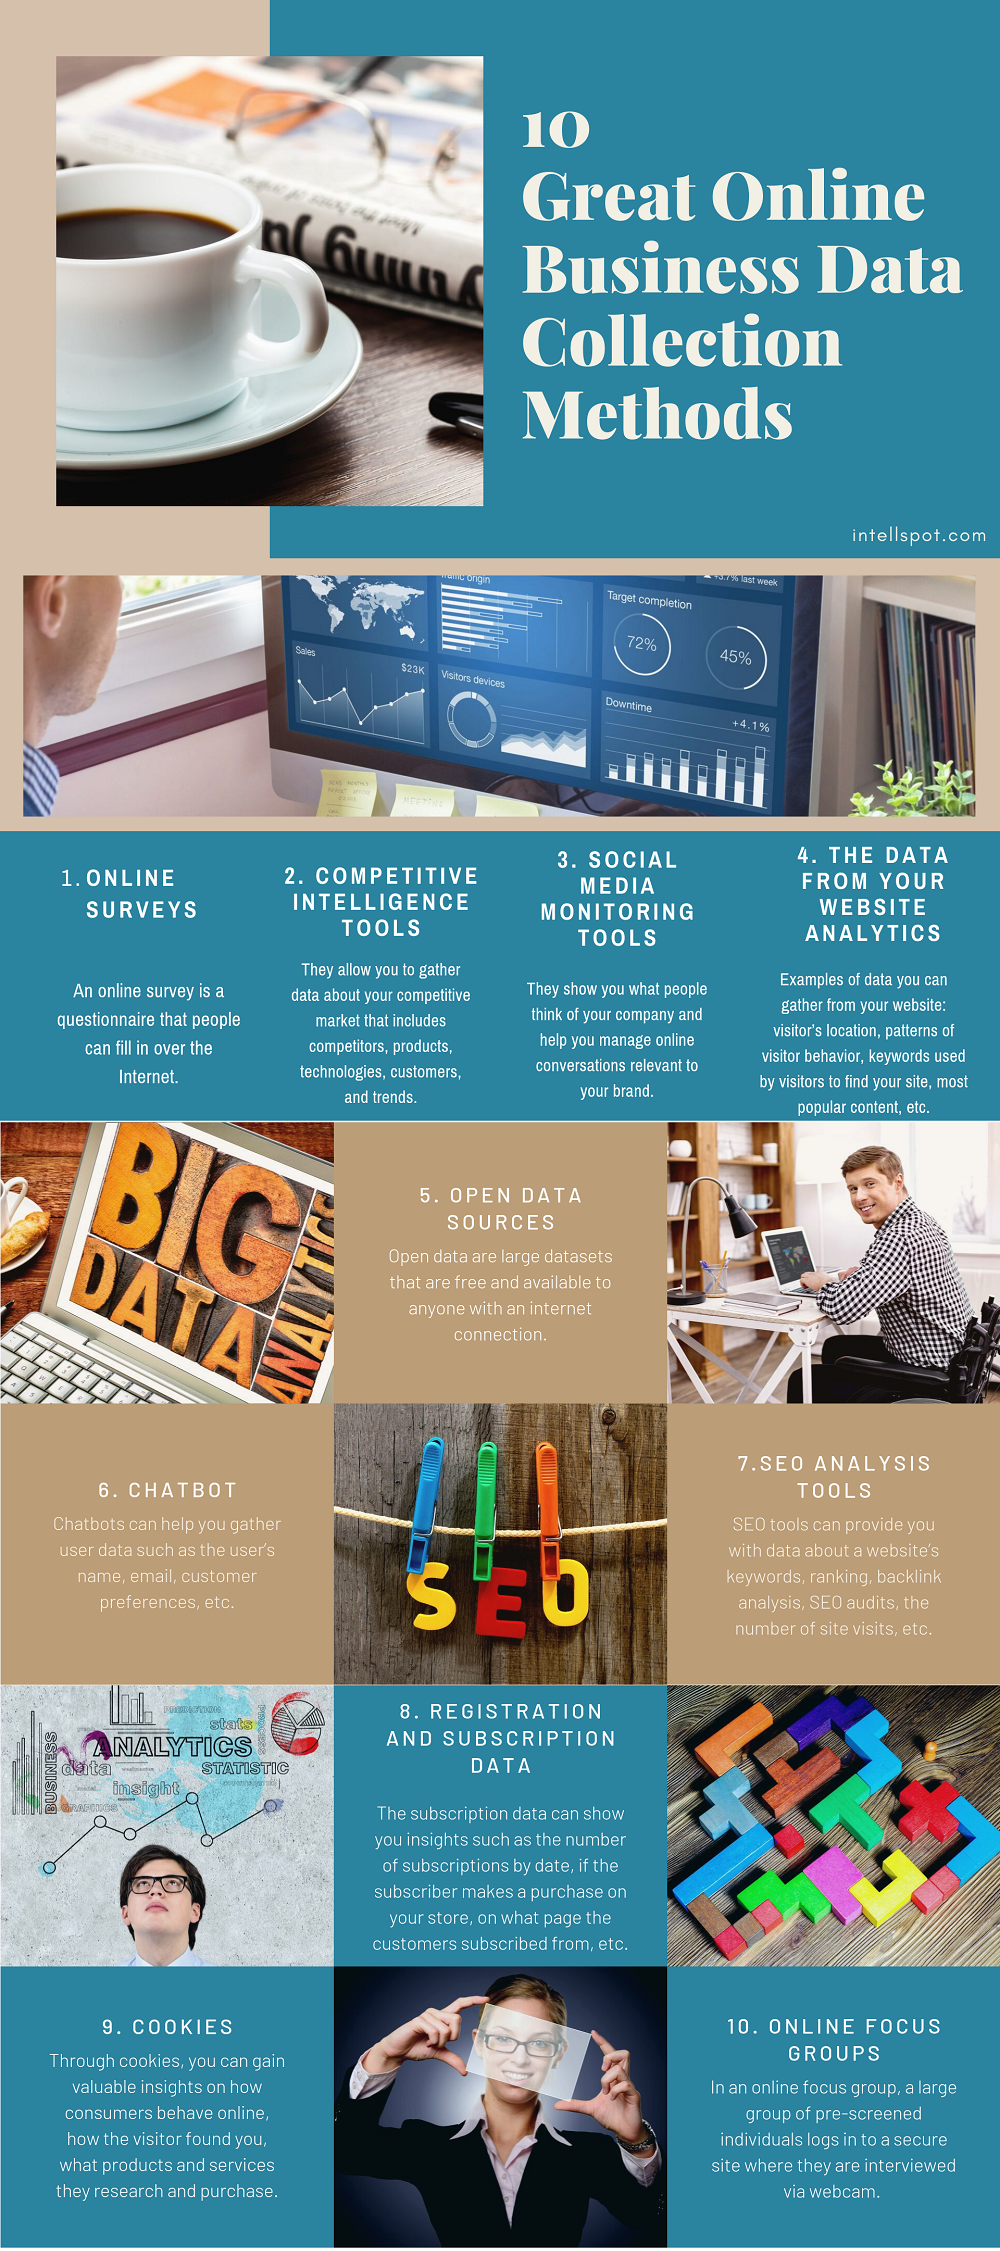 Online Business Data Collection Methods - infographic